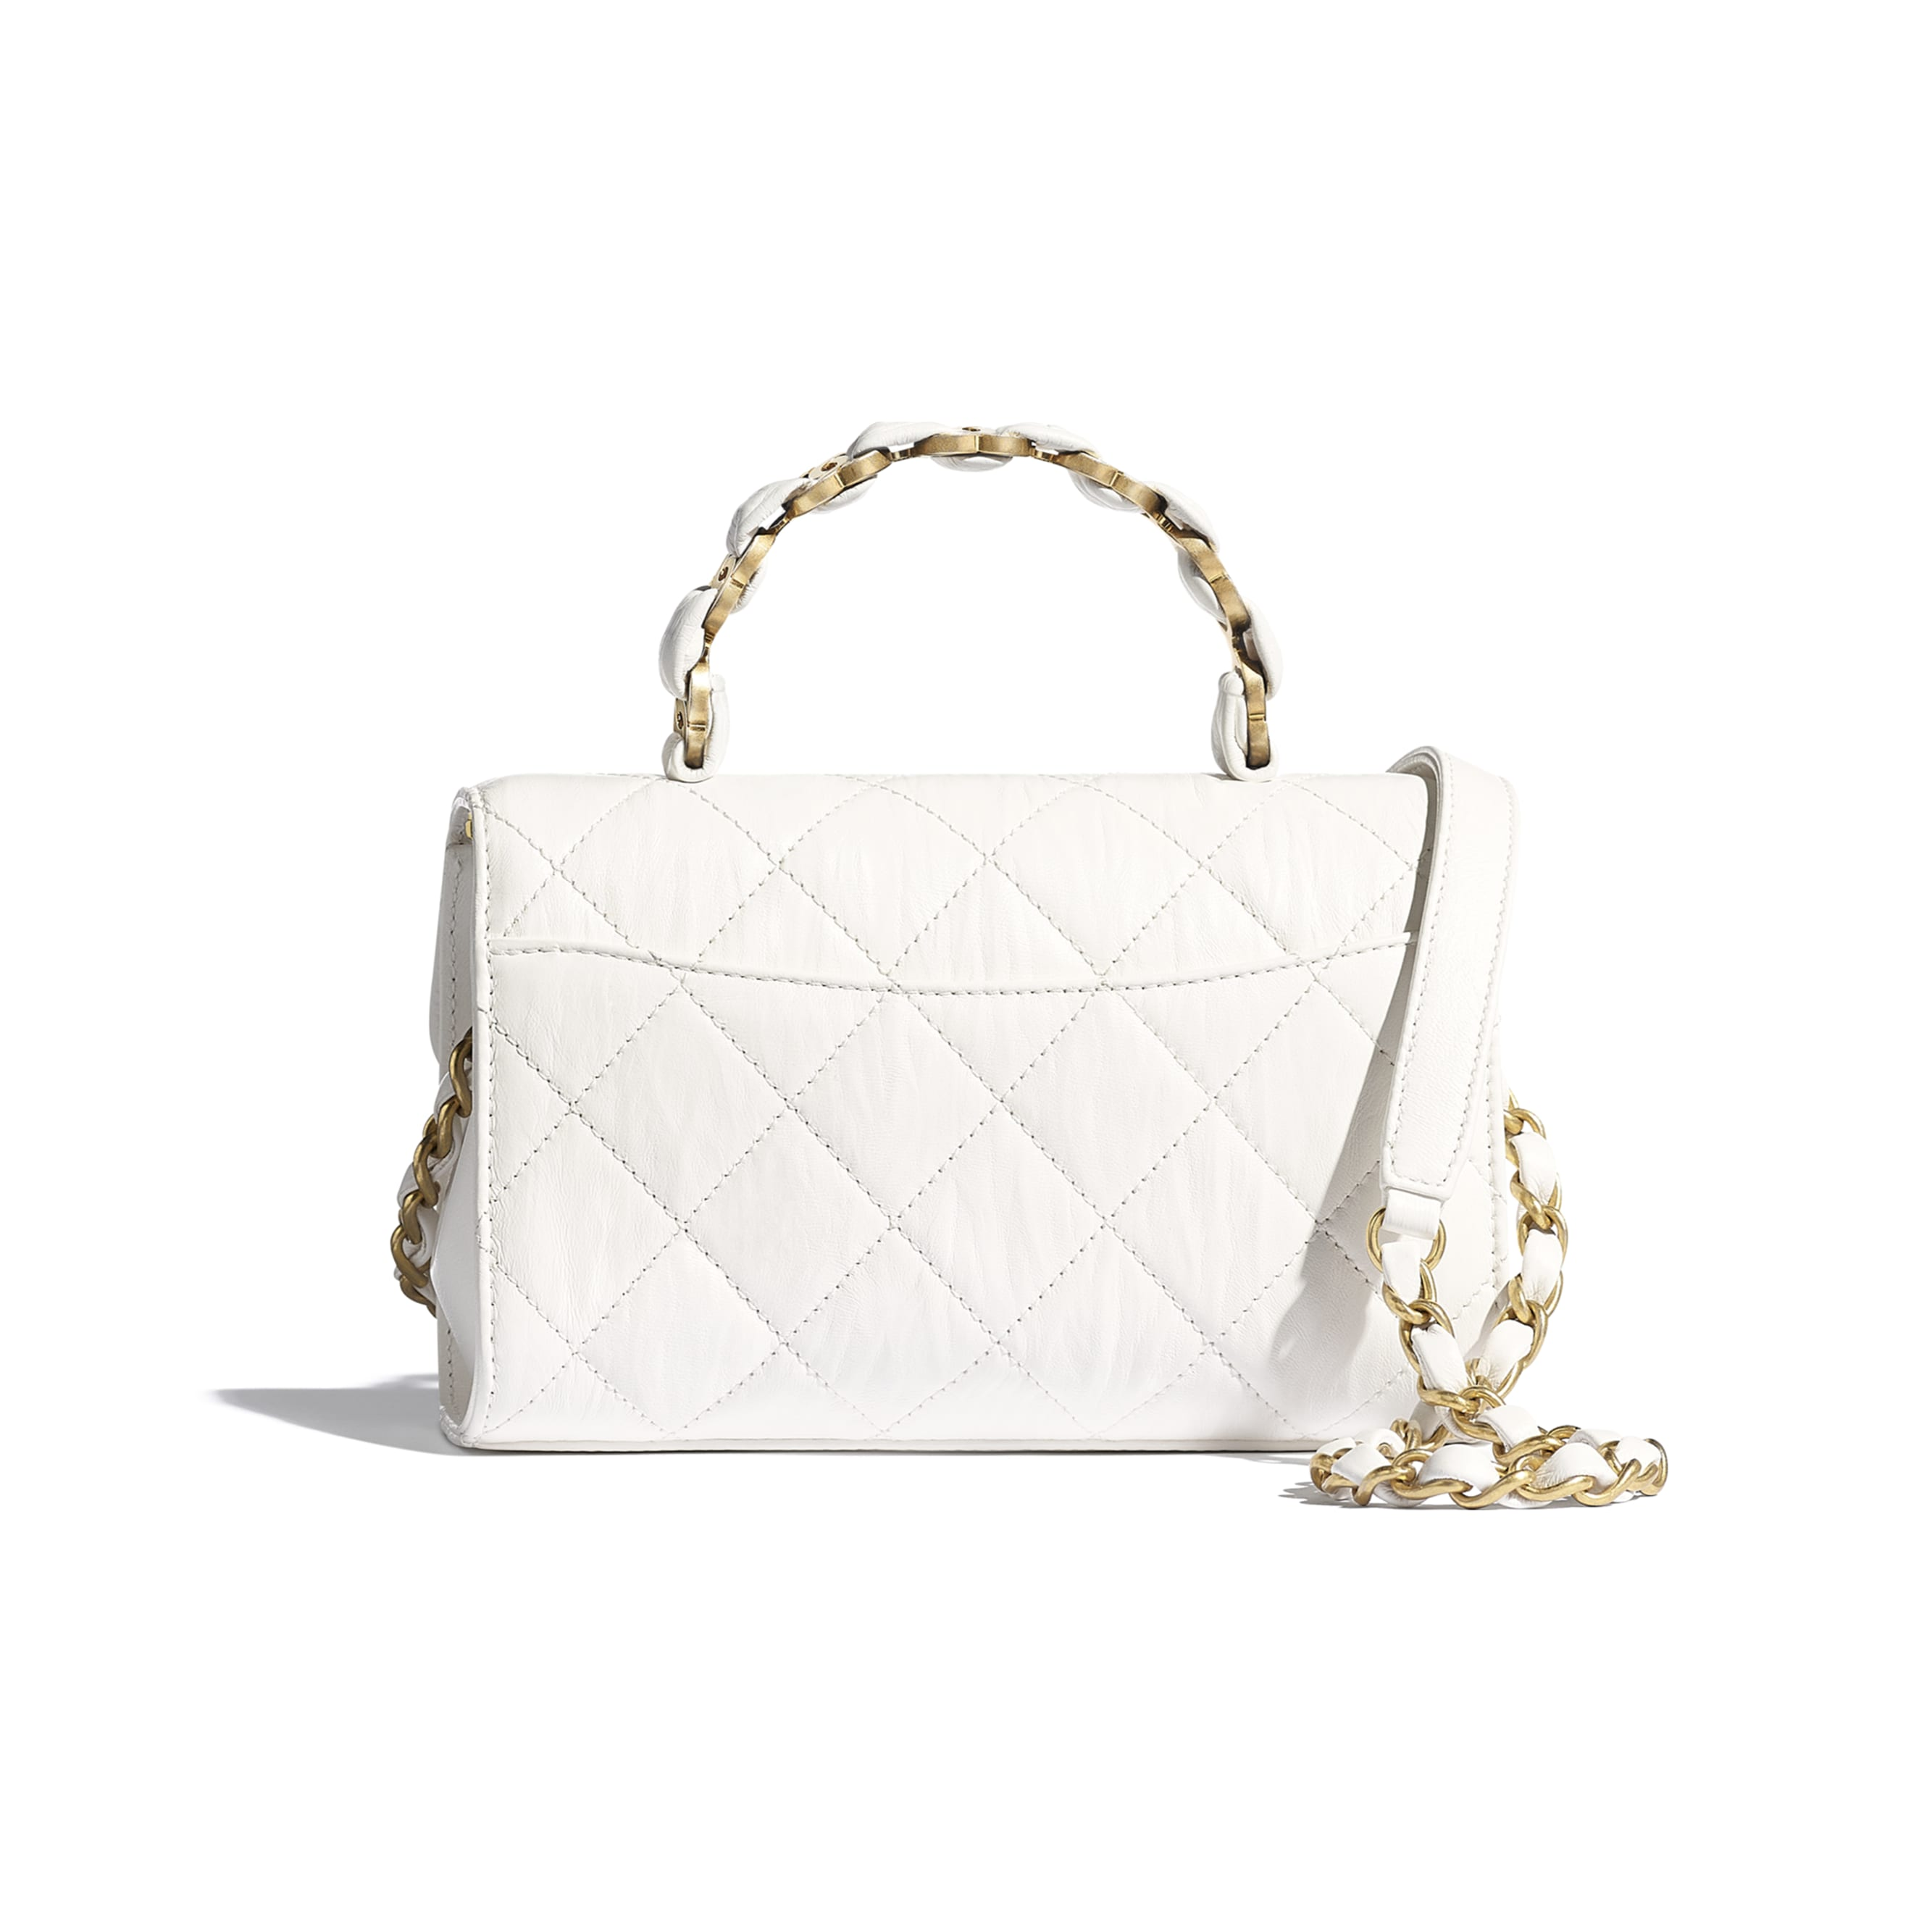 Mini Flap Bag with Top Handle - White - Crumpled Lambskin & Gold-Tone Metal - CHANEL - Alternative view - see standard sized version